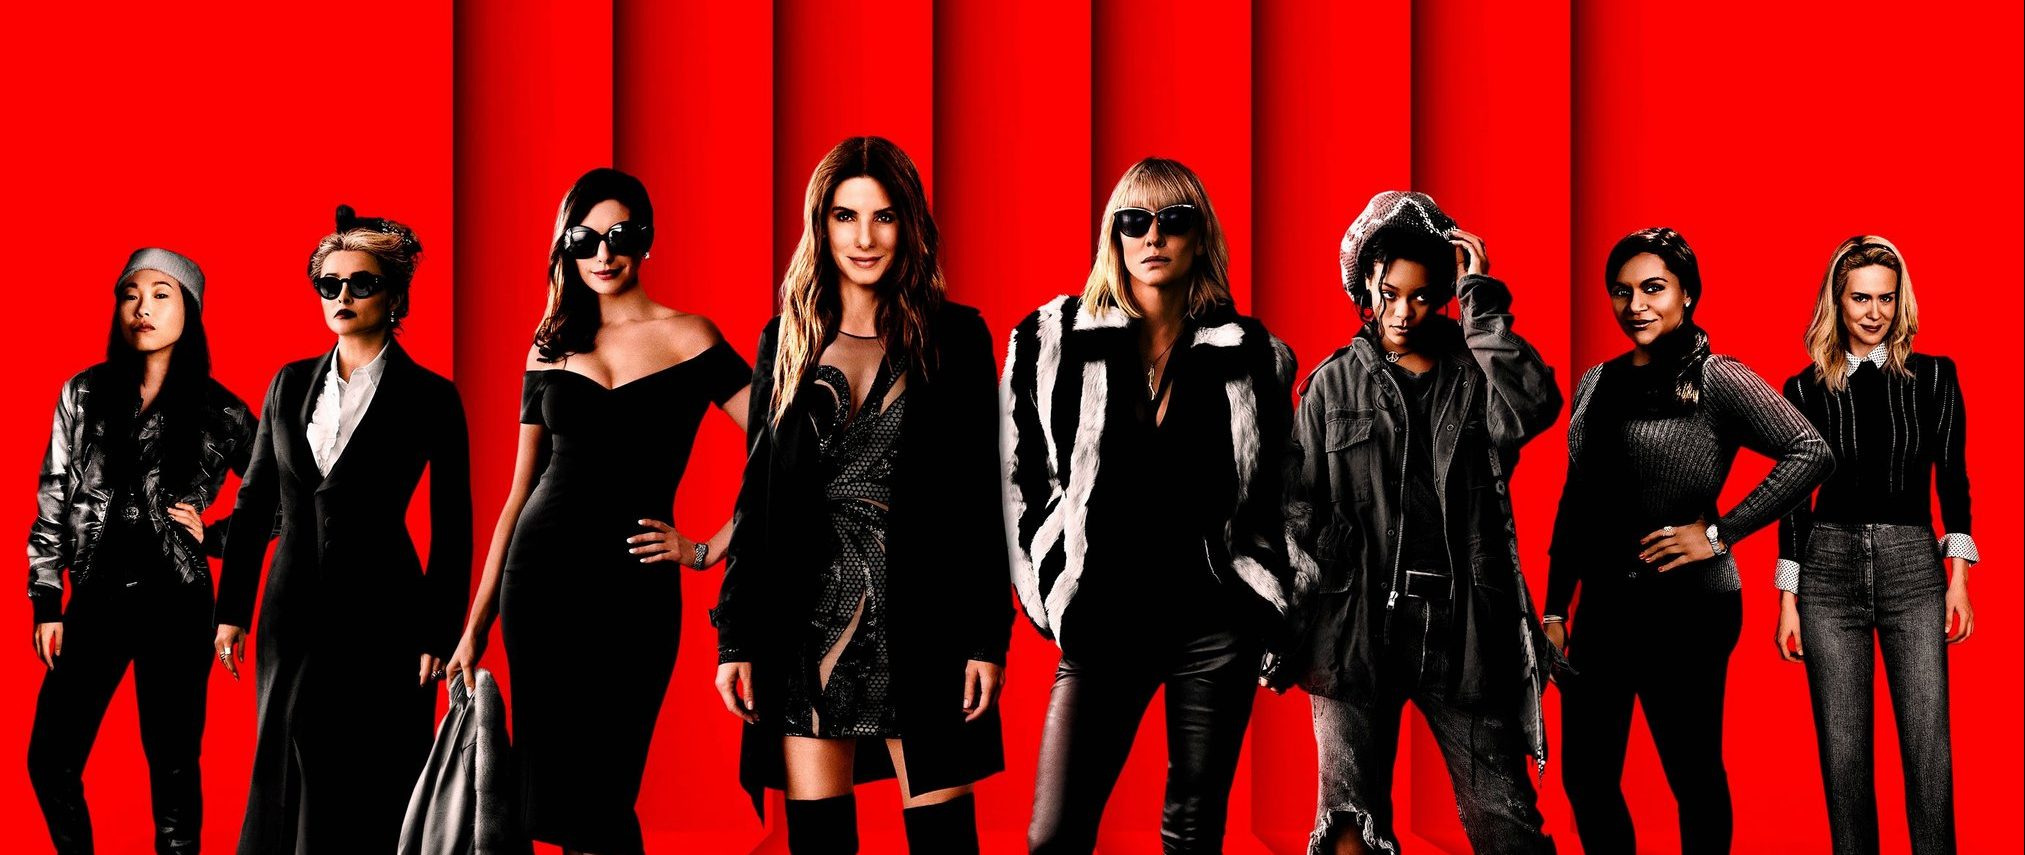 New Poster for Ocean's 8, Starring Sandra Bullock and Cate Blanchett,